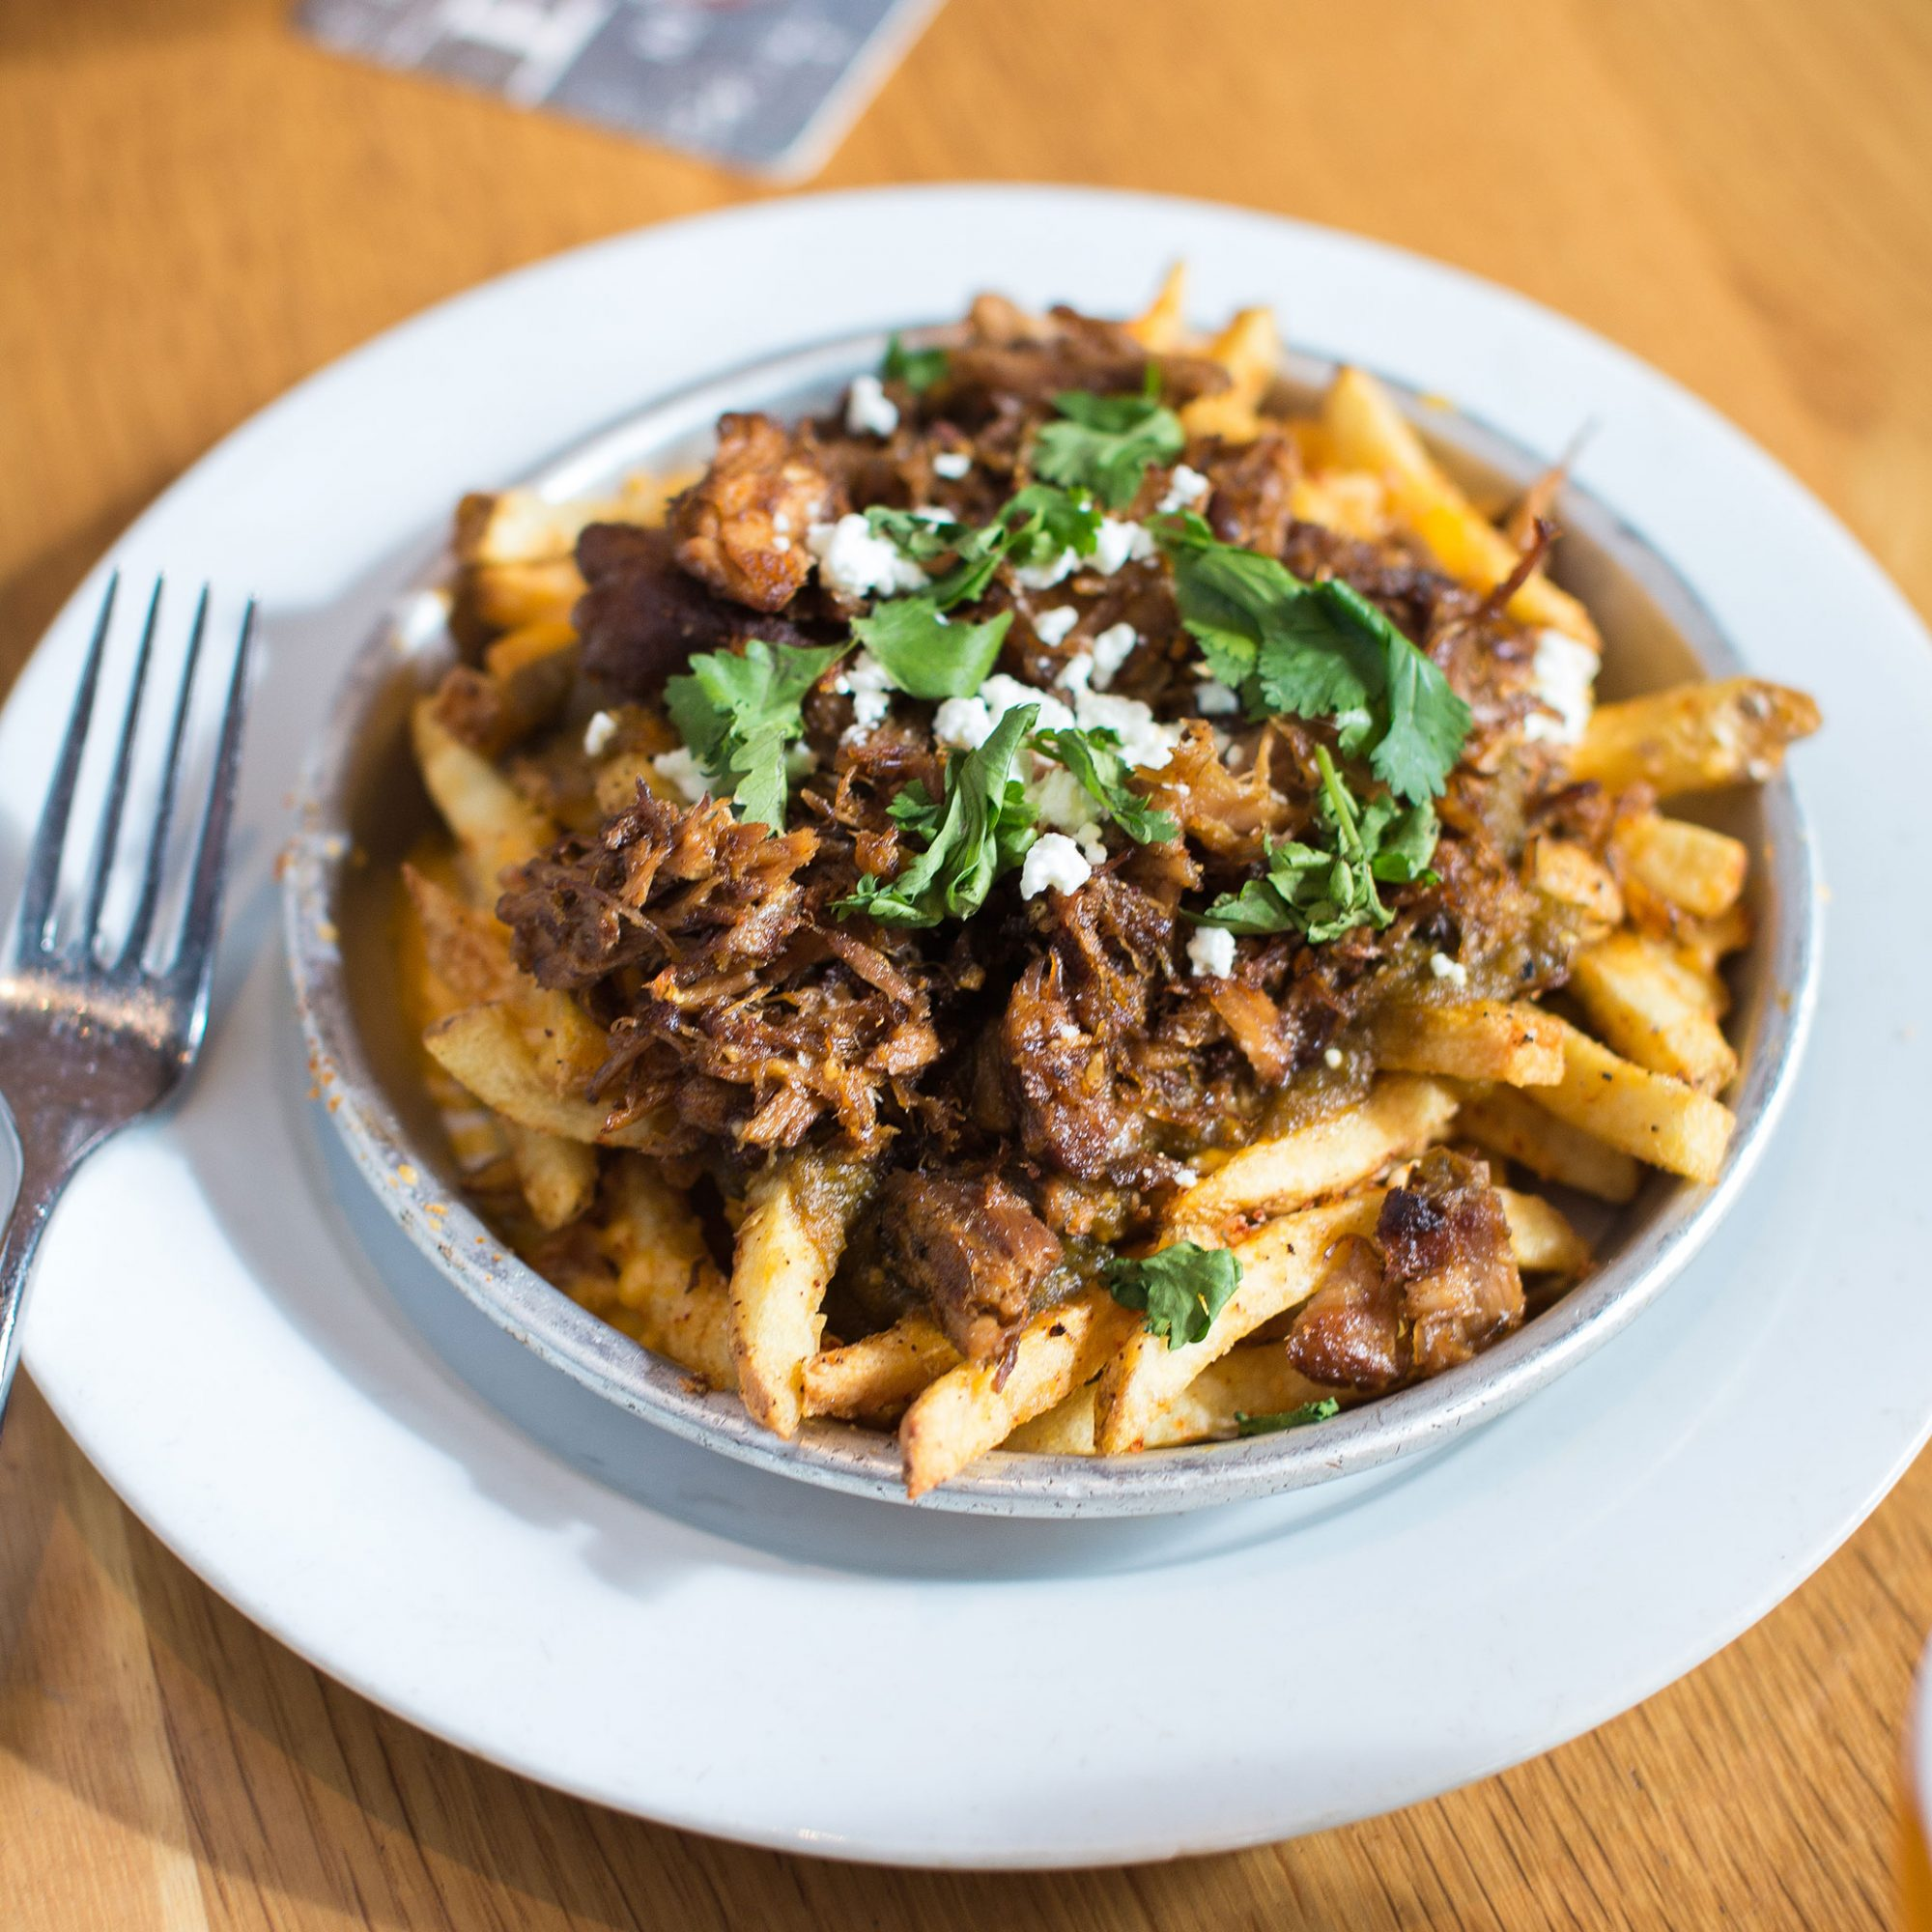 Canada's National Dish Gets the Chili Cheese Treatment